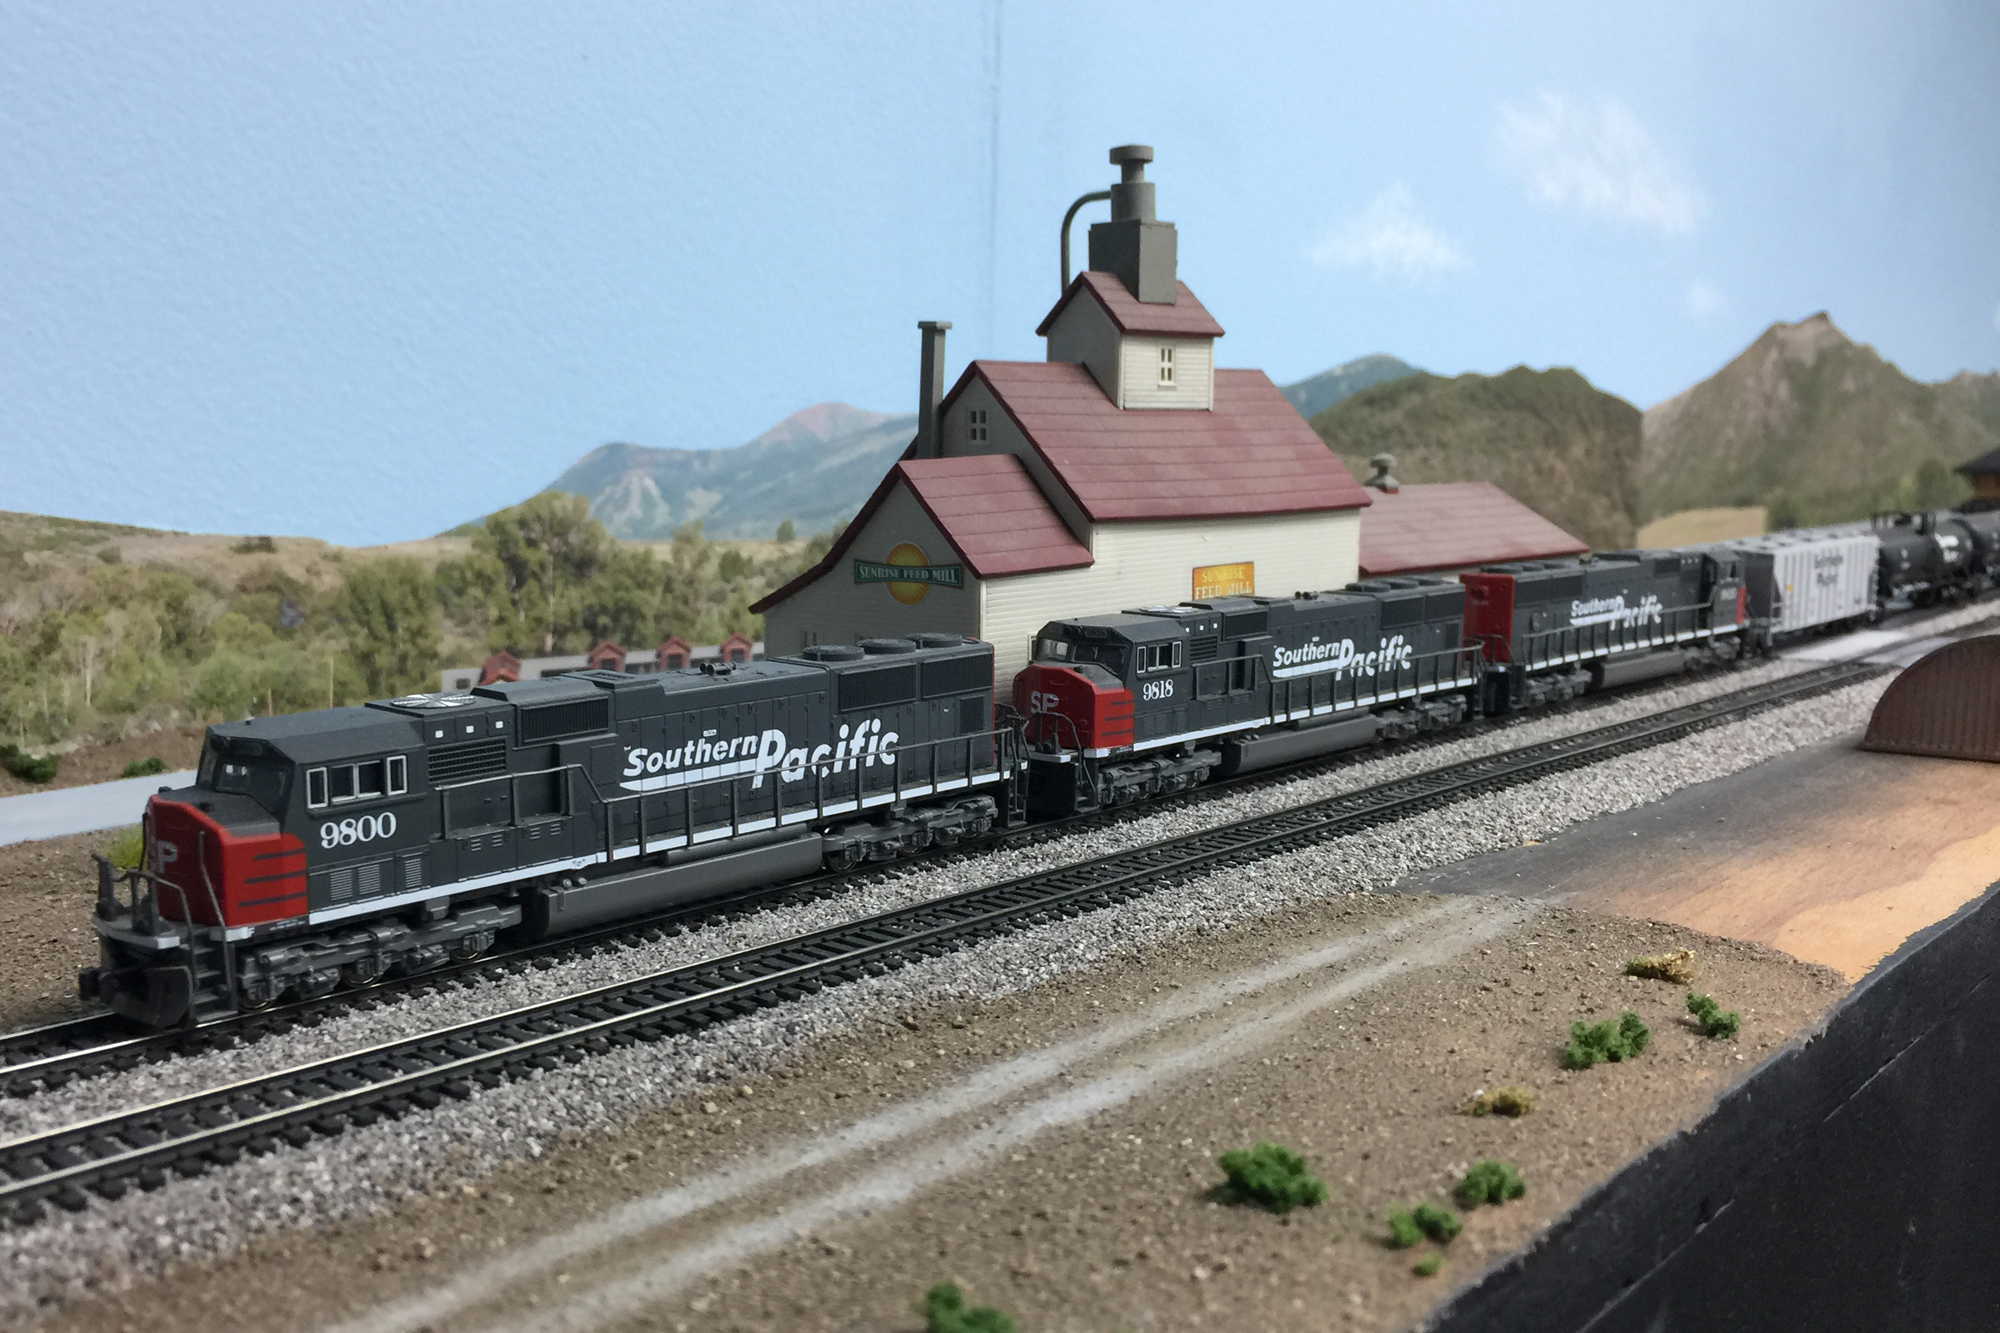 N Scale freight train and layout by Don Fowler, Master Model Railroader®, San Diego Division member.